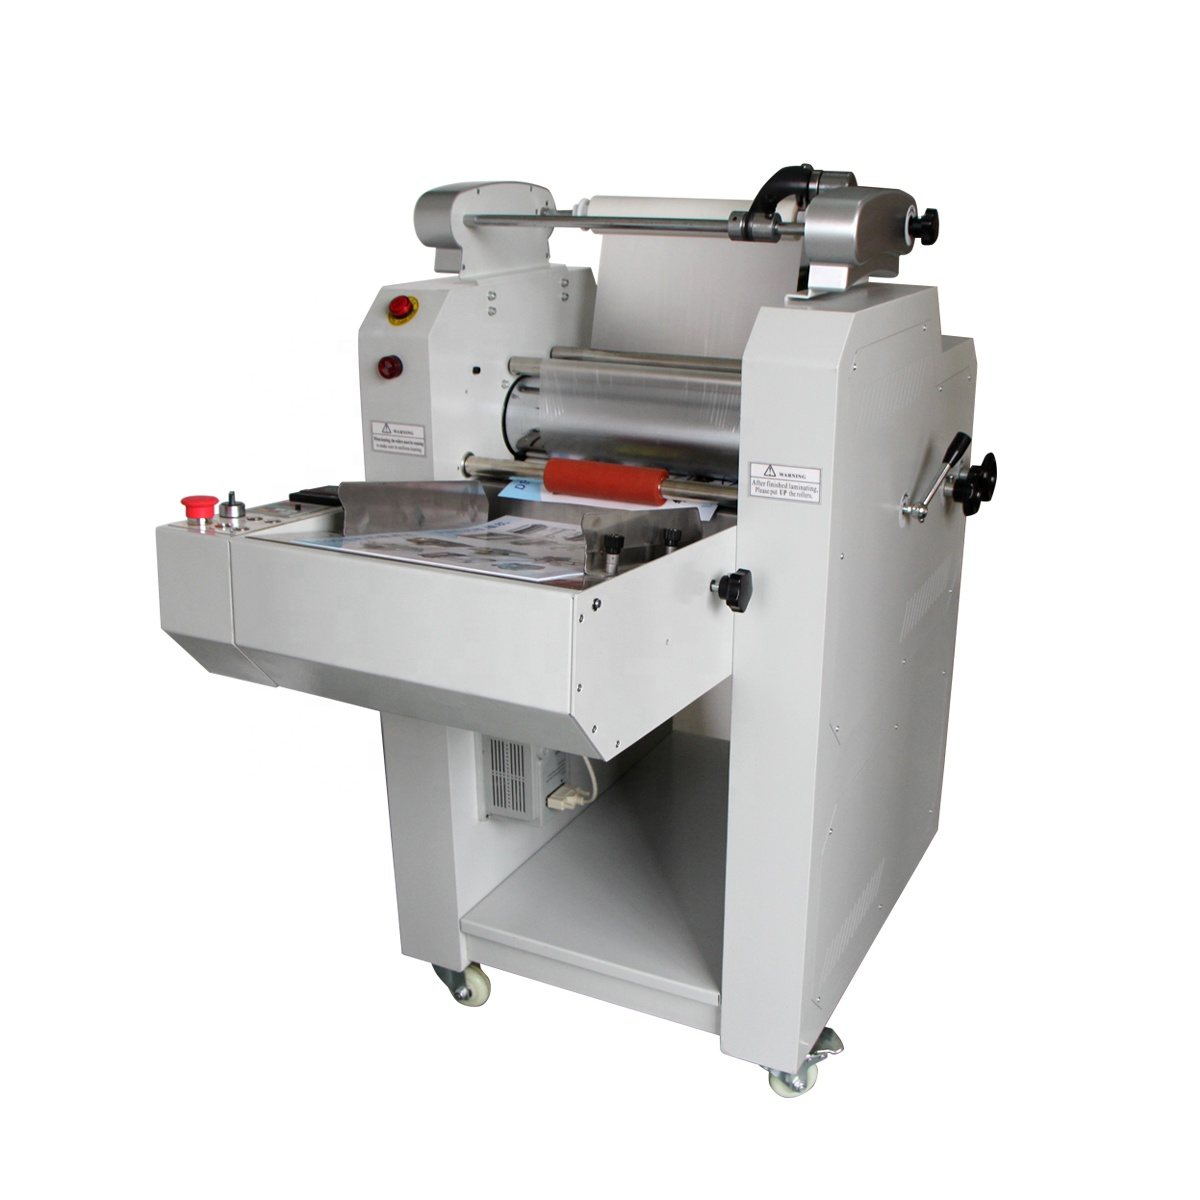 BFT-390A A3 size Multi-fucntion automatic roll laminator with foil transfer function